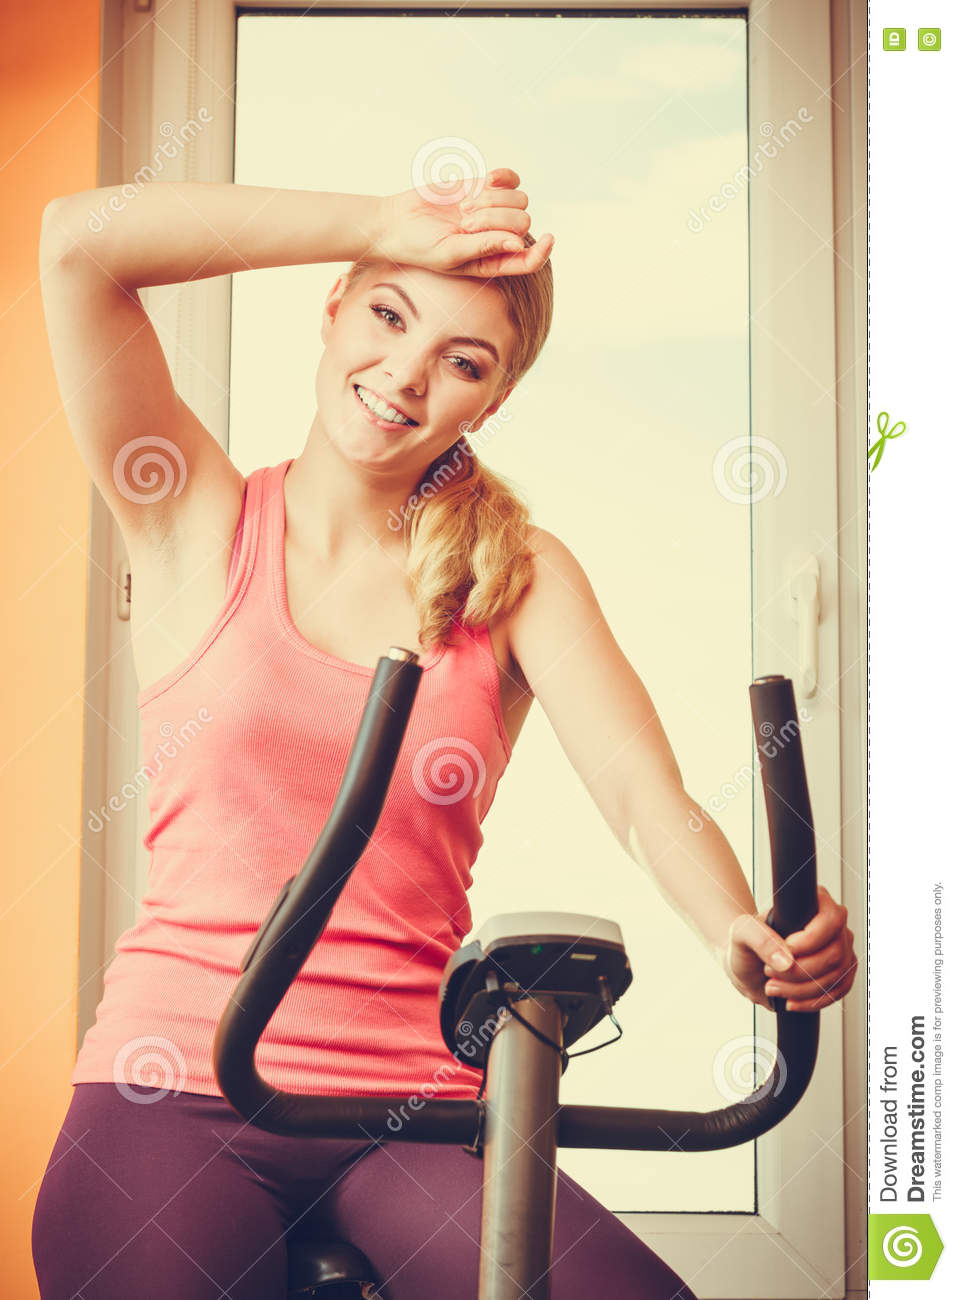 Woman Working Out On Exercise Bike  Fitness  Stock Photo